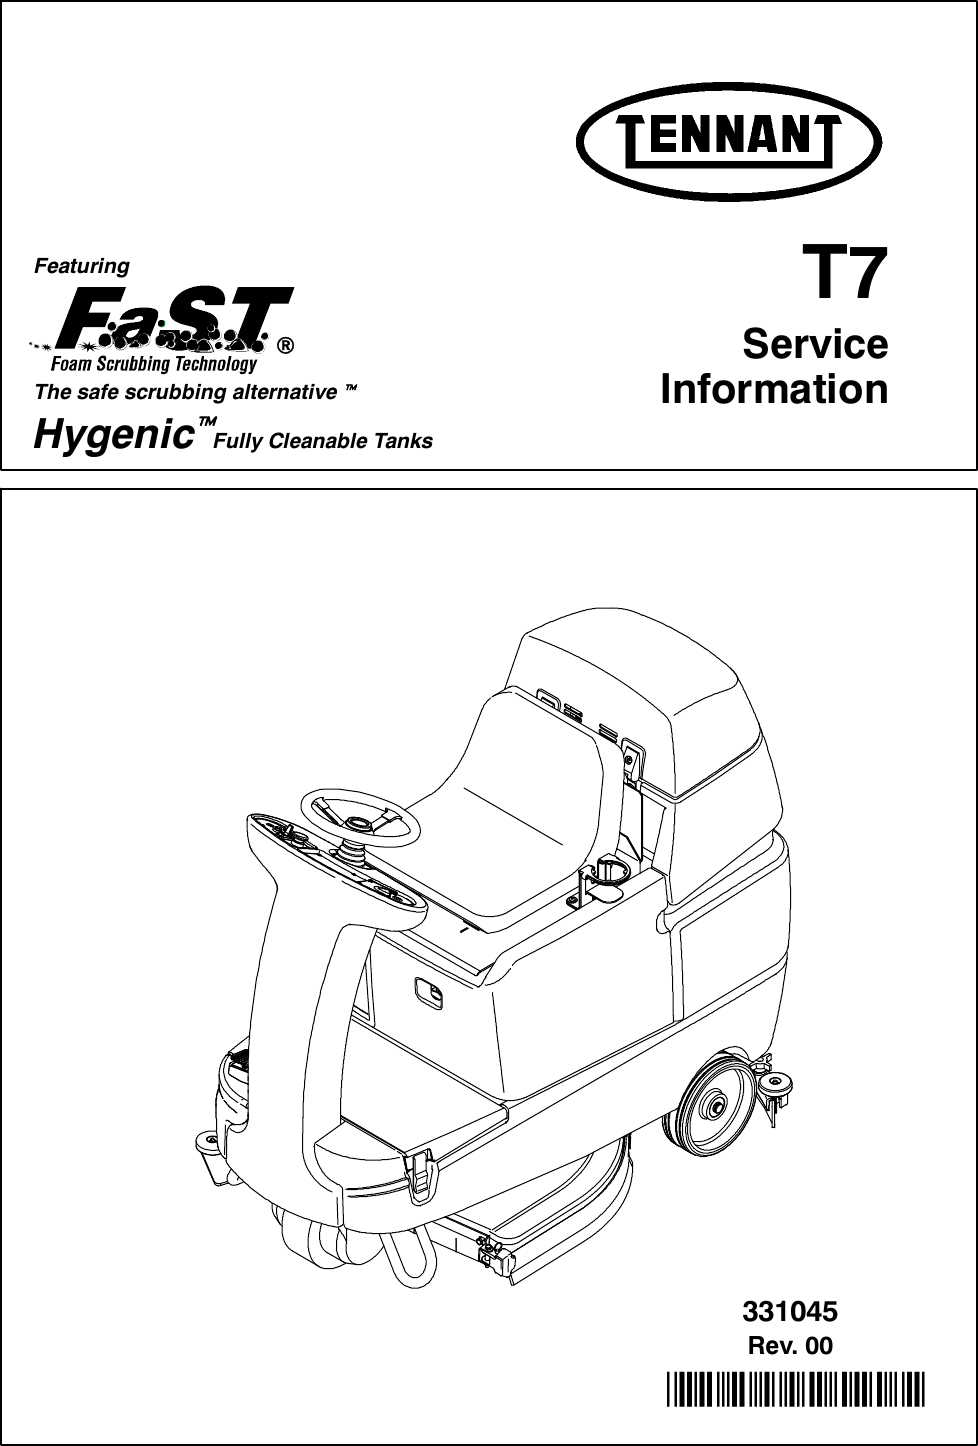 T7 Service Manual Tennant rider floor scrubber